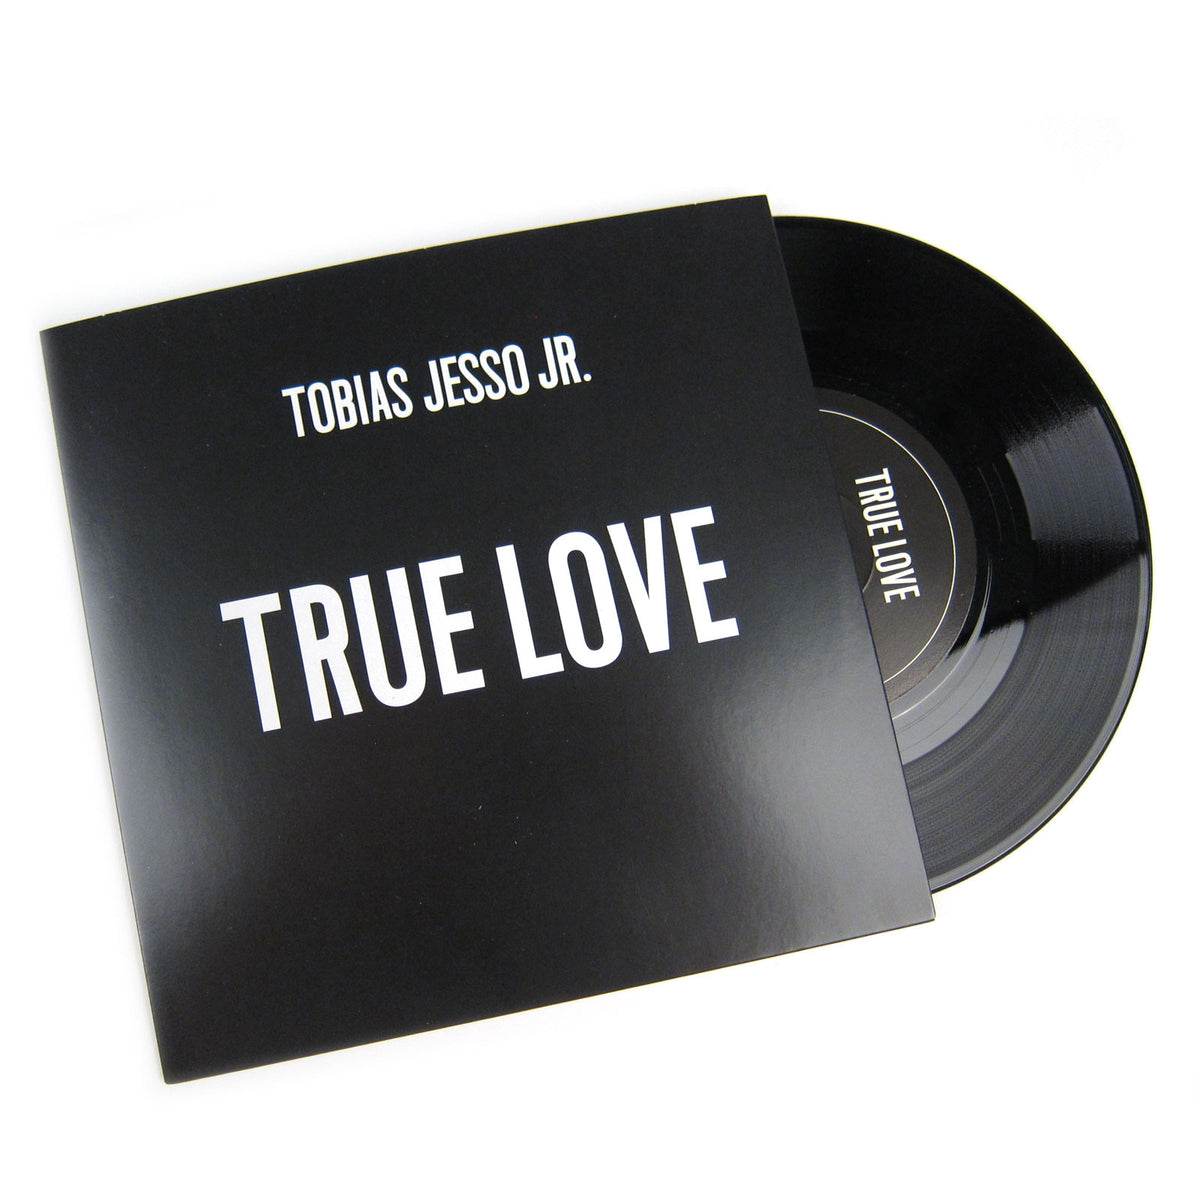 Tobias Jesso Jr.: True Love / Without You Vinyl 7""